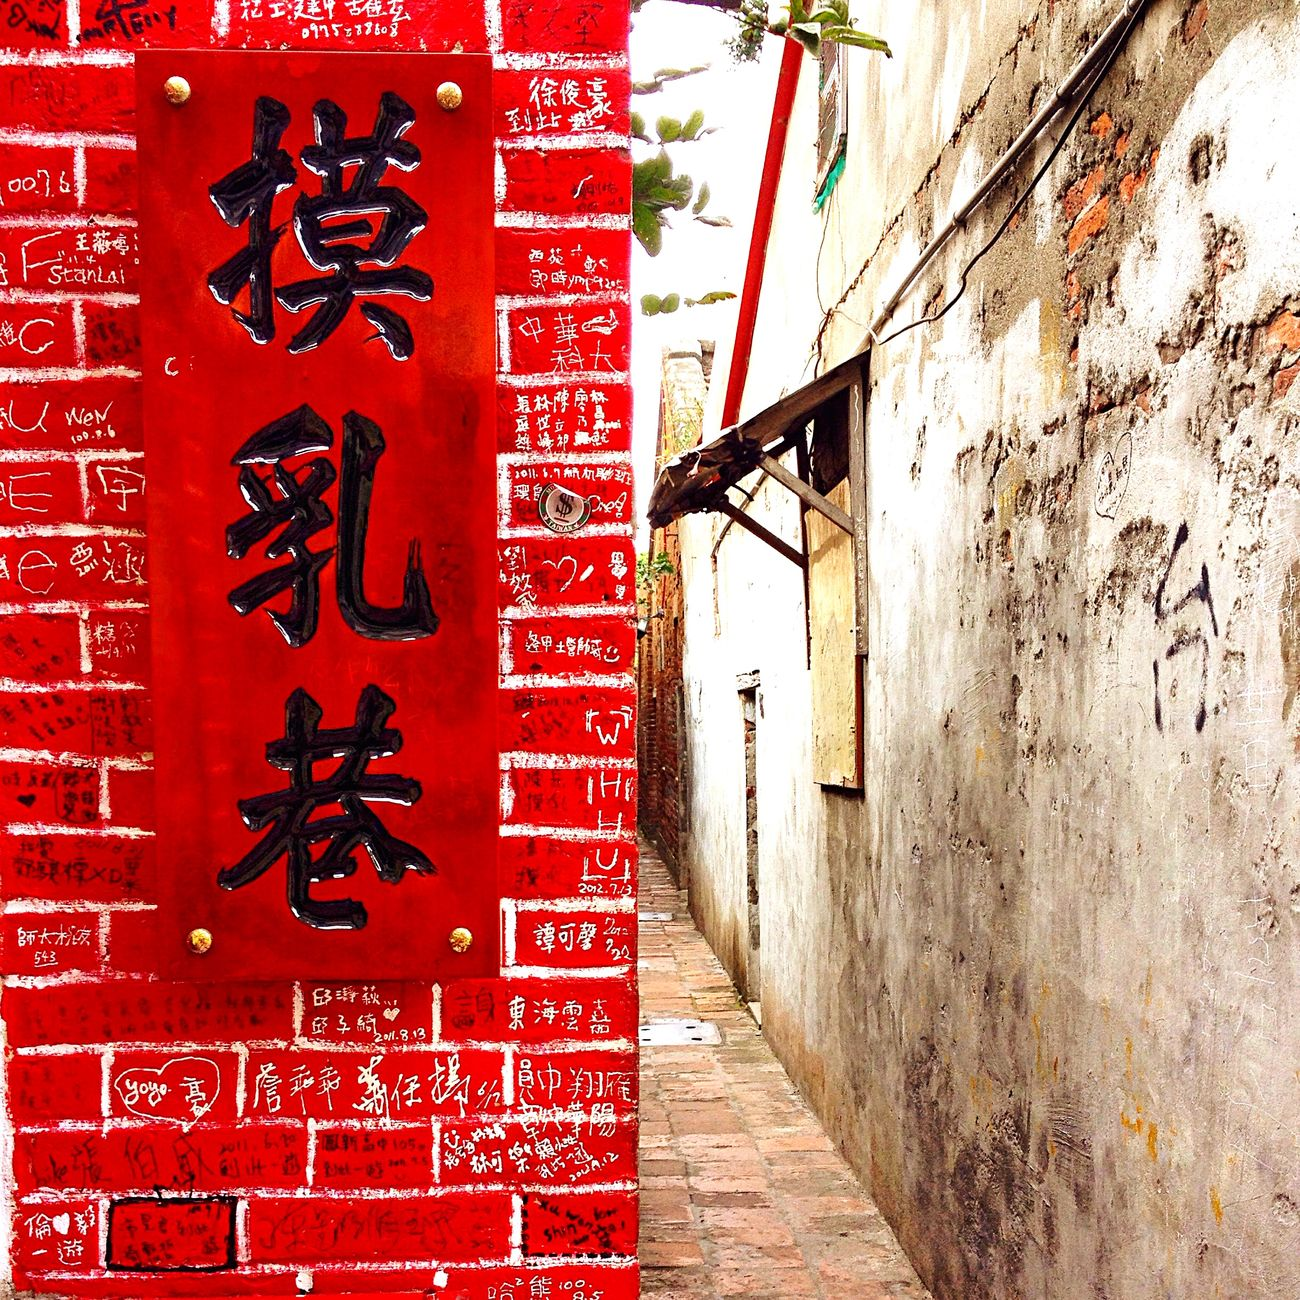 路過,記得來摸下~ Red 摸乳巷 Hello World 鹿港小鎮 Changhua Photography Travel The View And The Spirit Of Taiwan 台灣景 台灣情 Taiwan